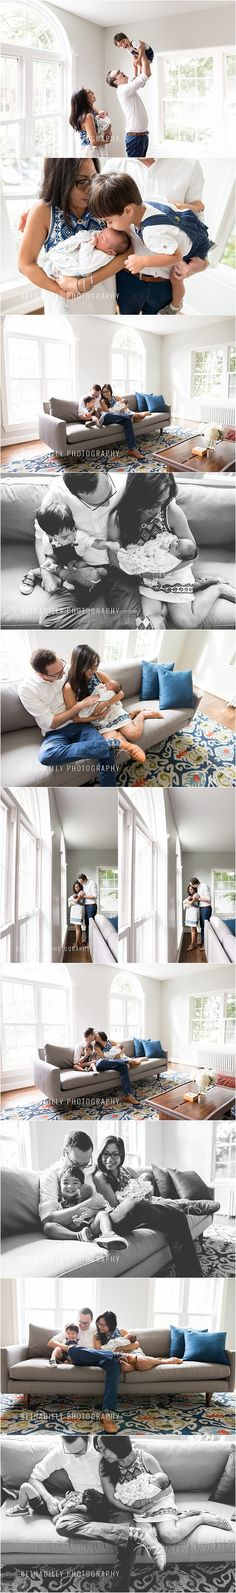 A Little Sister To Love | Alexandria Lifestyle Newborn Photographer | bethadilly photography